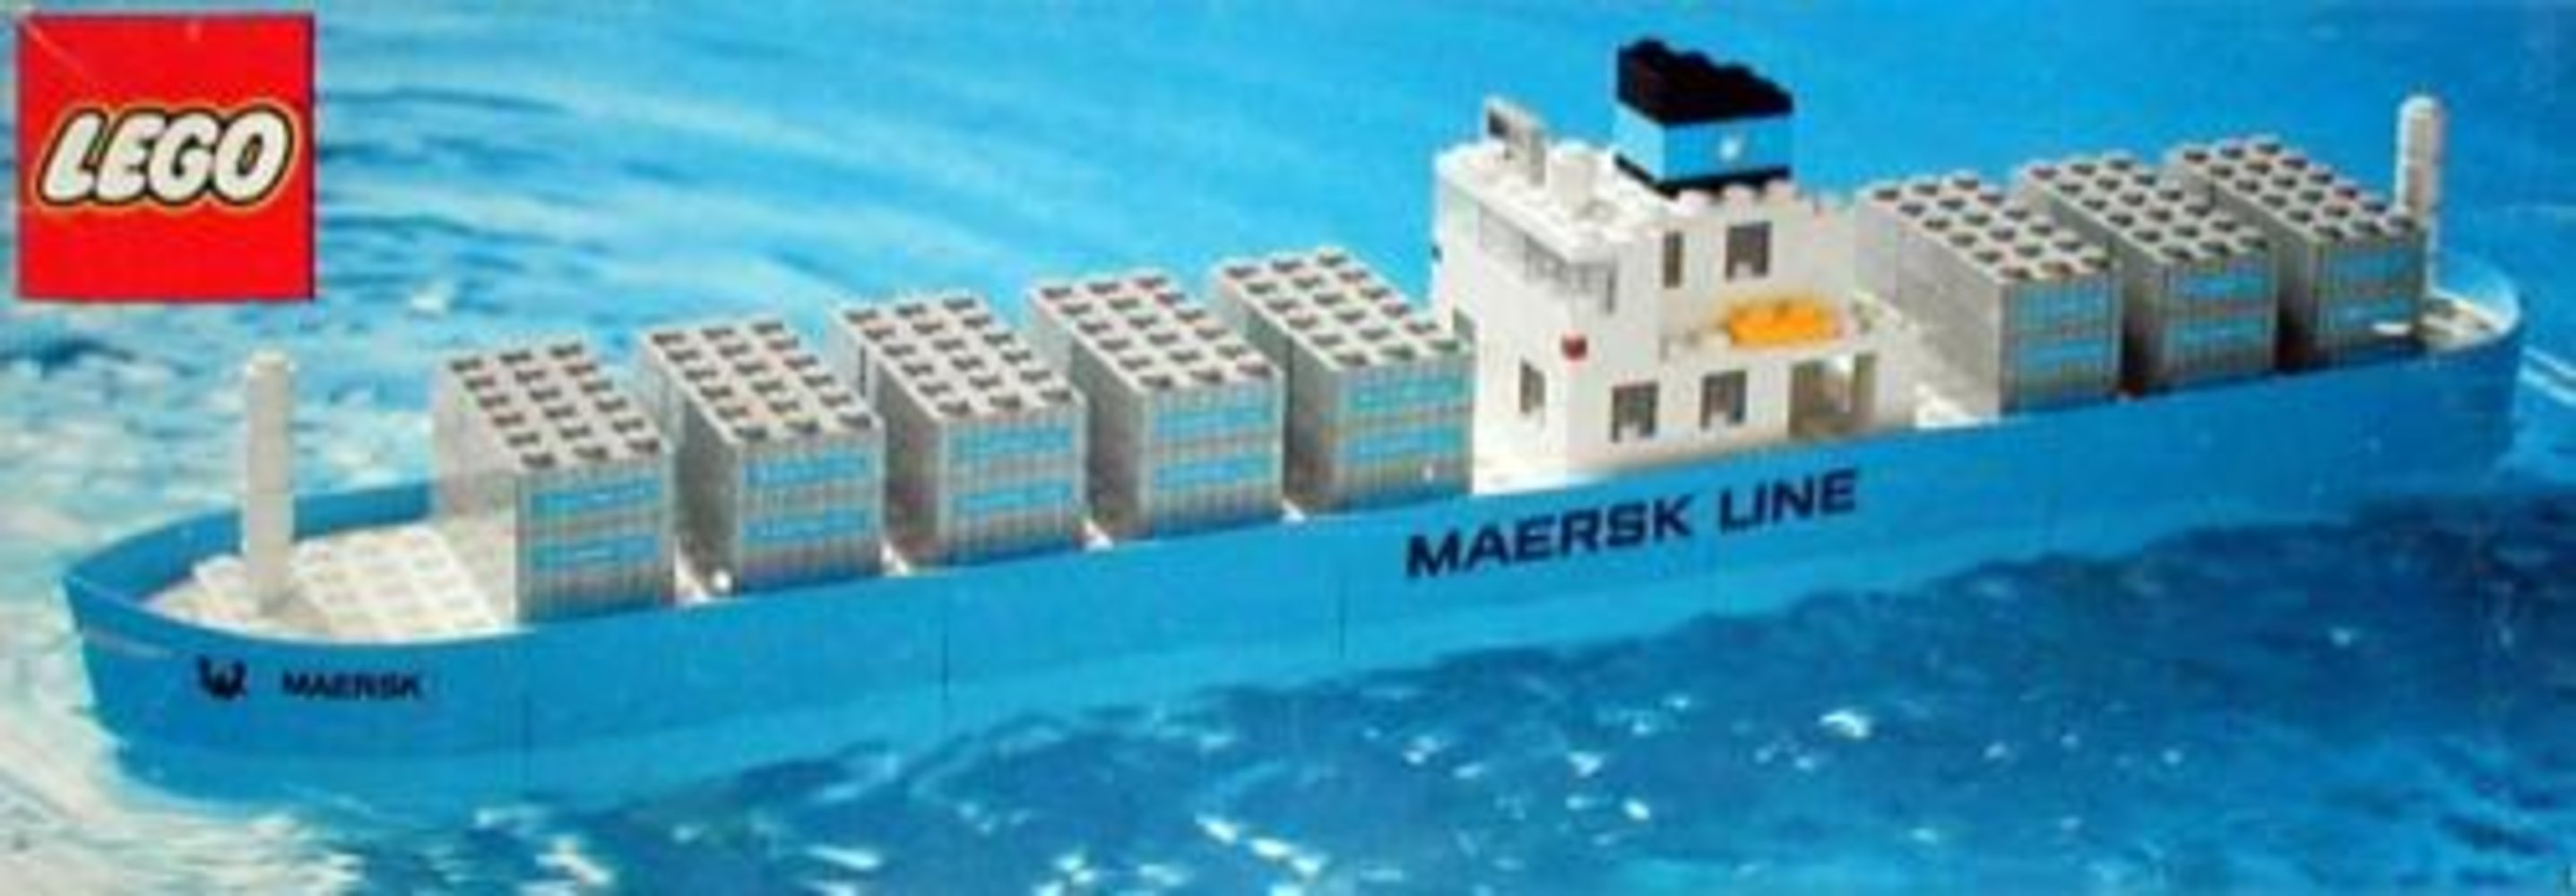 Maersk Line [Promotional Container Ship]